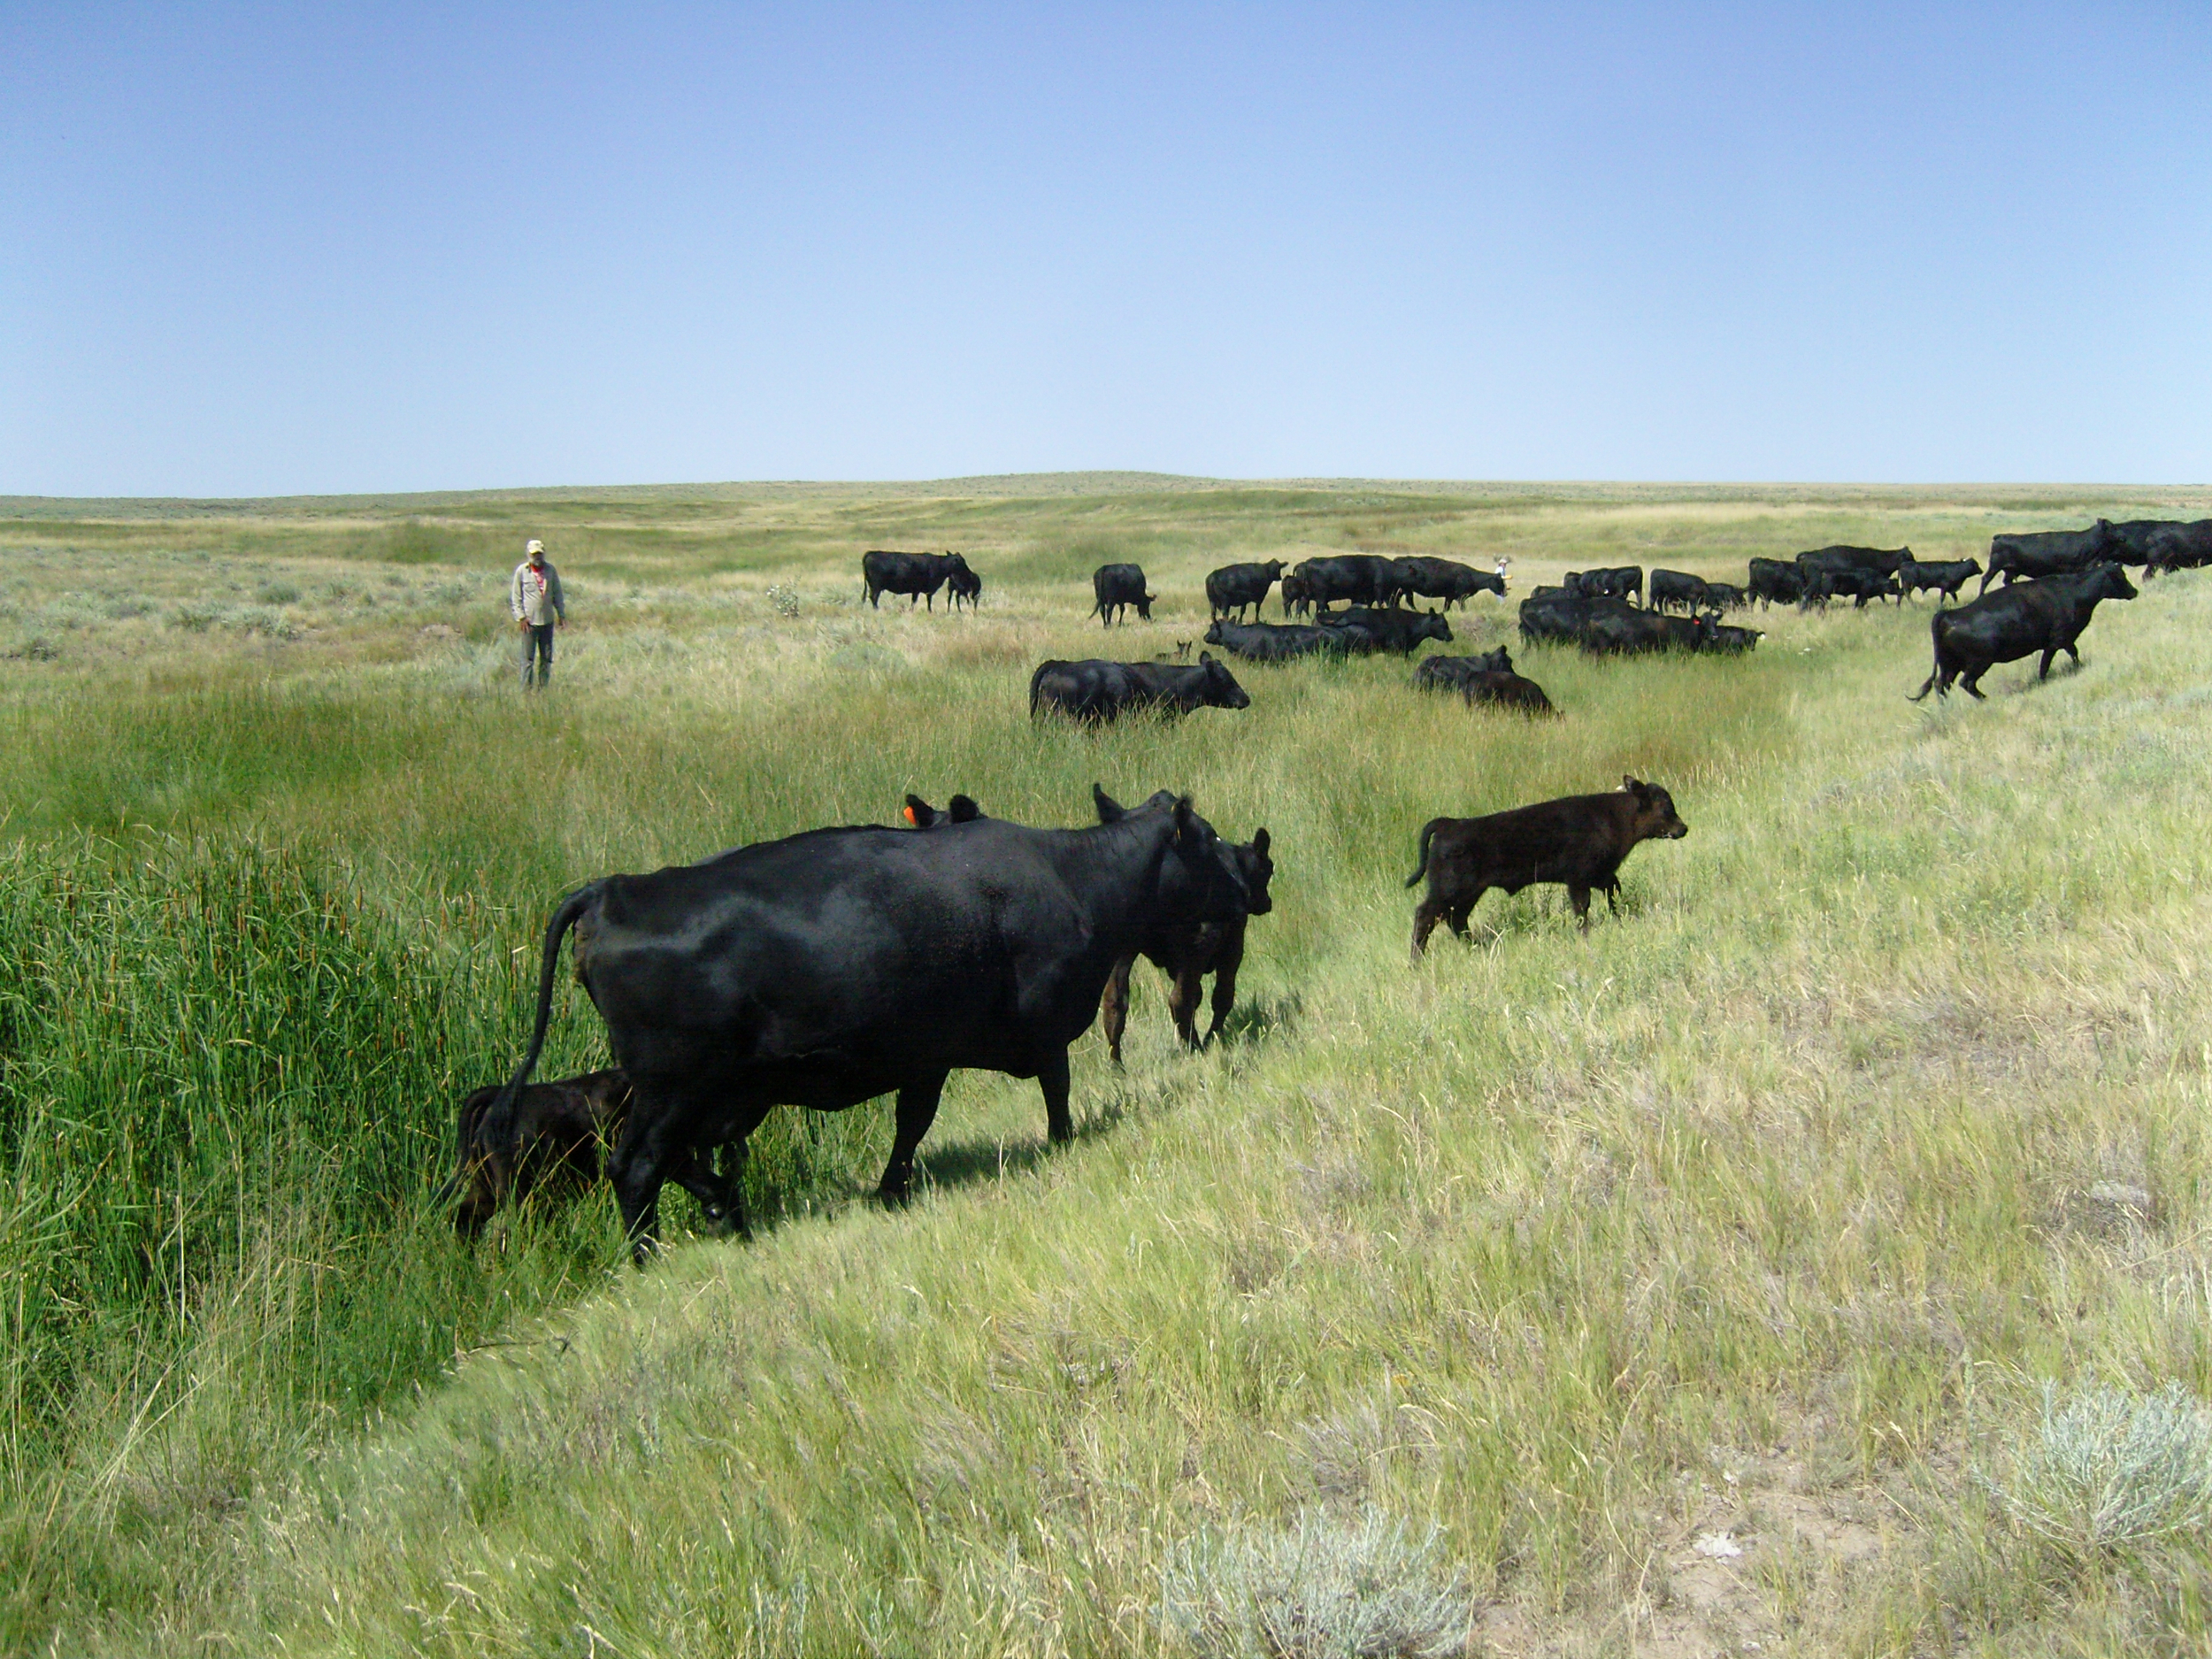 Walking in the herd: a careful and humane way to gather cattle together.